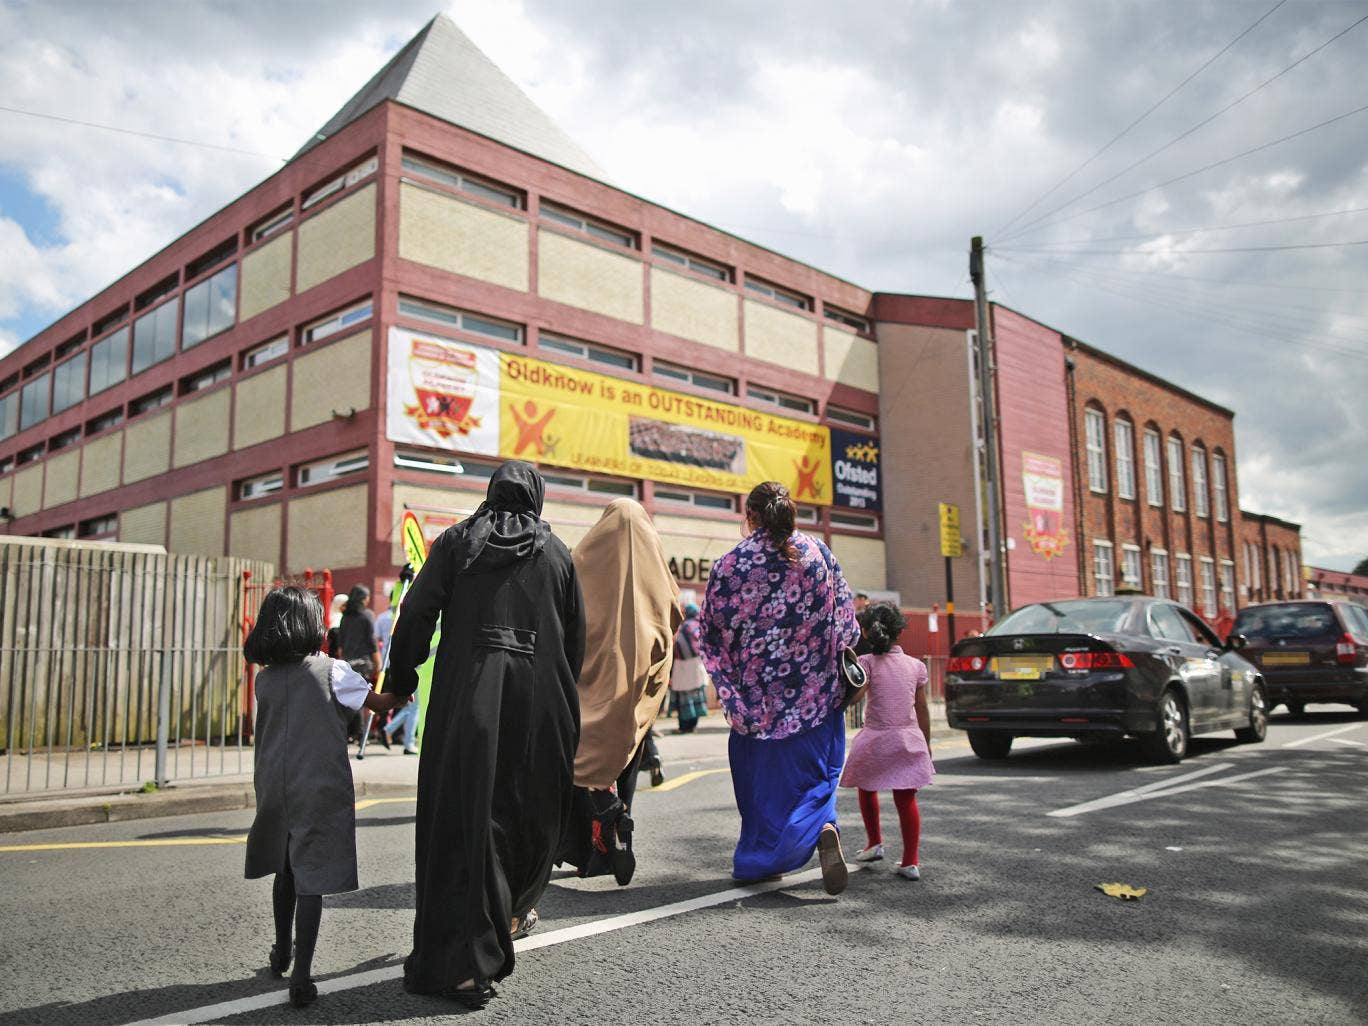 Oldknow Academy, one of the Birmingham Schools at the centre of the 'Trojan Horse' affair